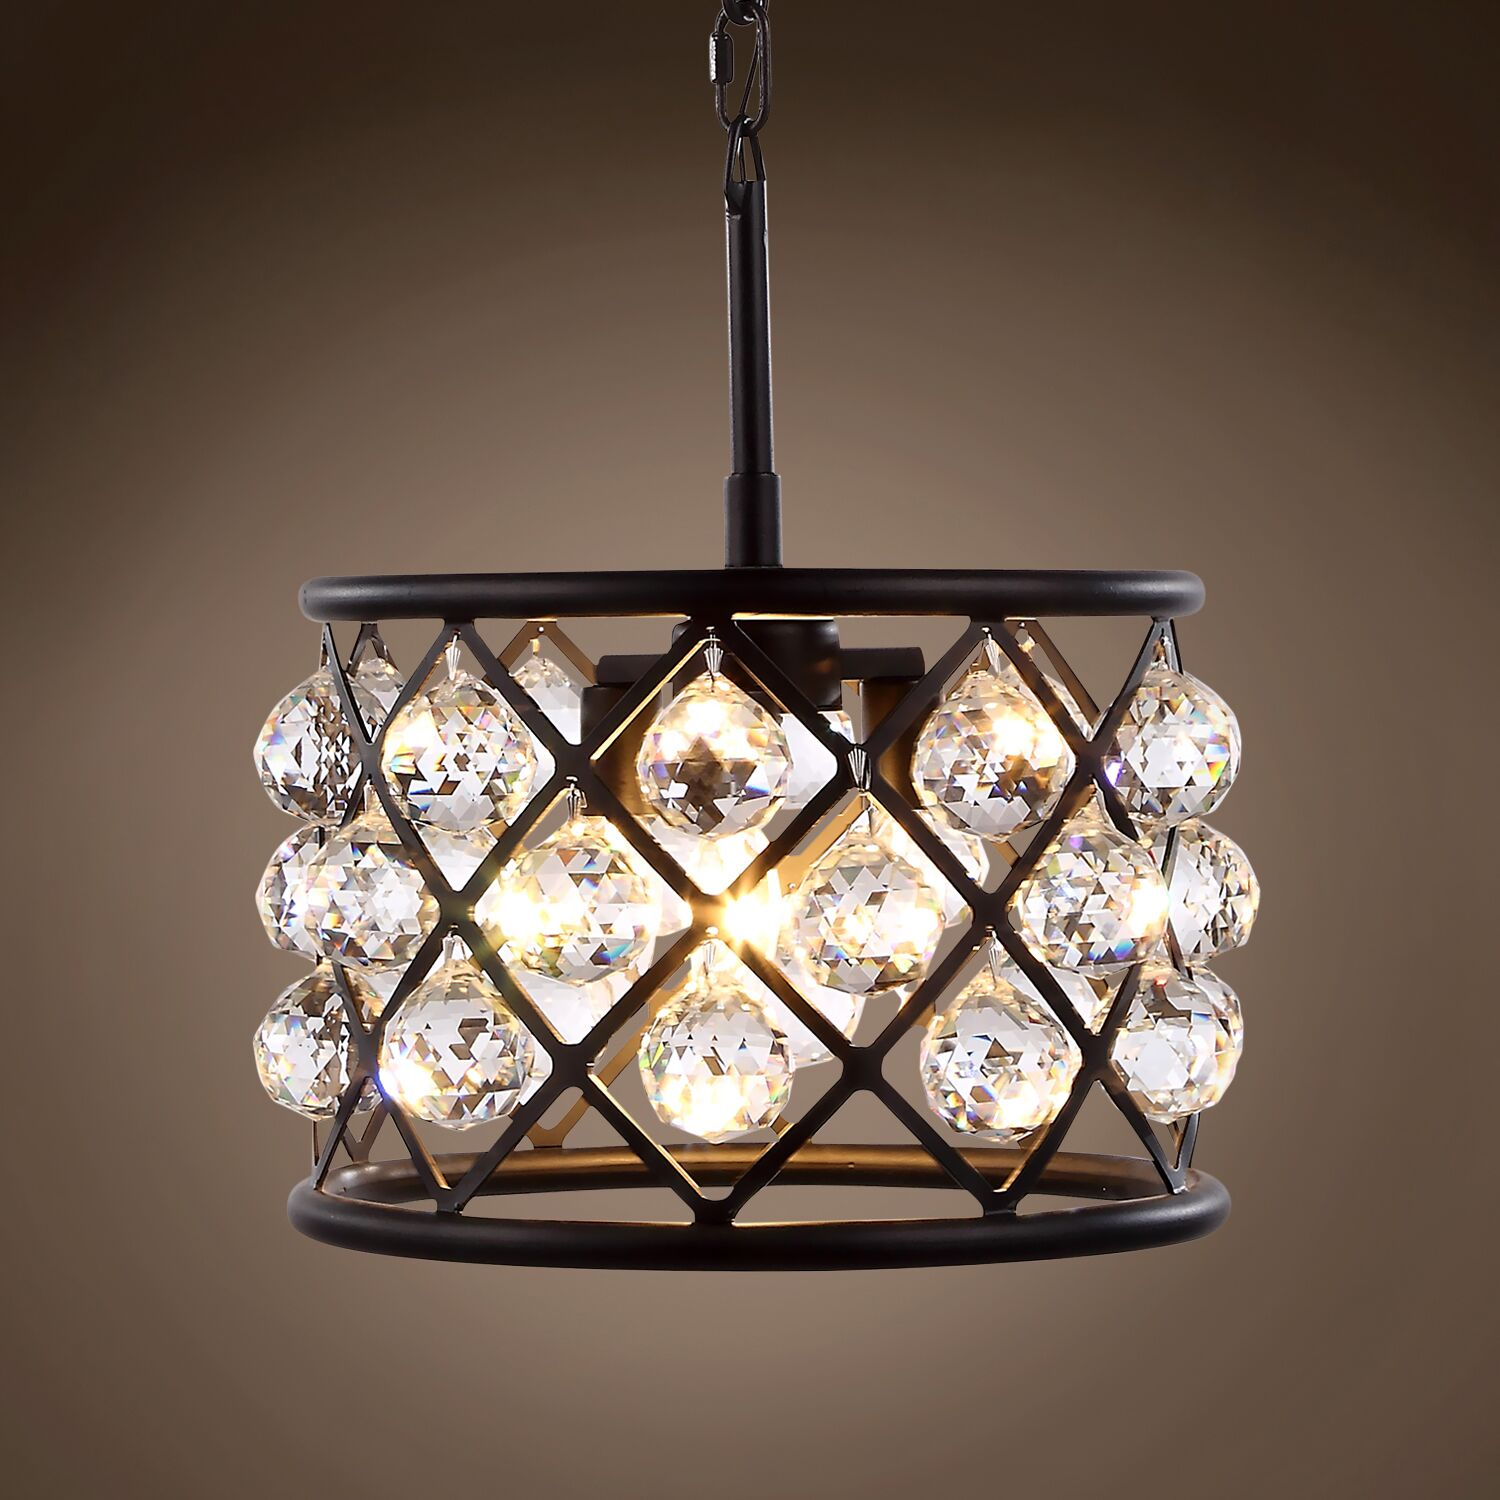 Lulsgate 3-Light Chandelier Shade Color: Clear, Finish: Gray, Bulb Type: Incandescent